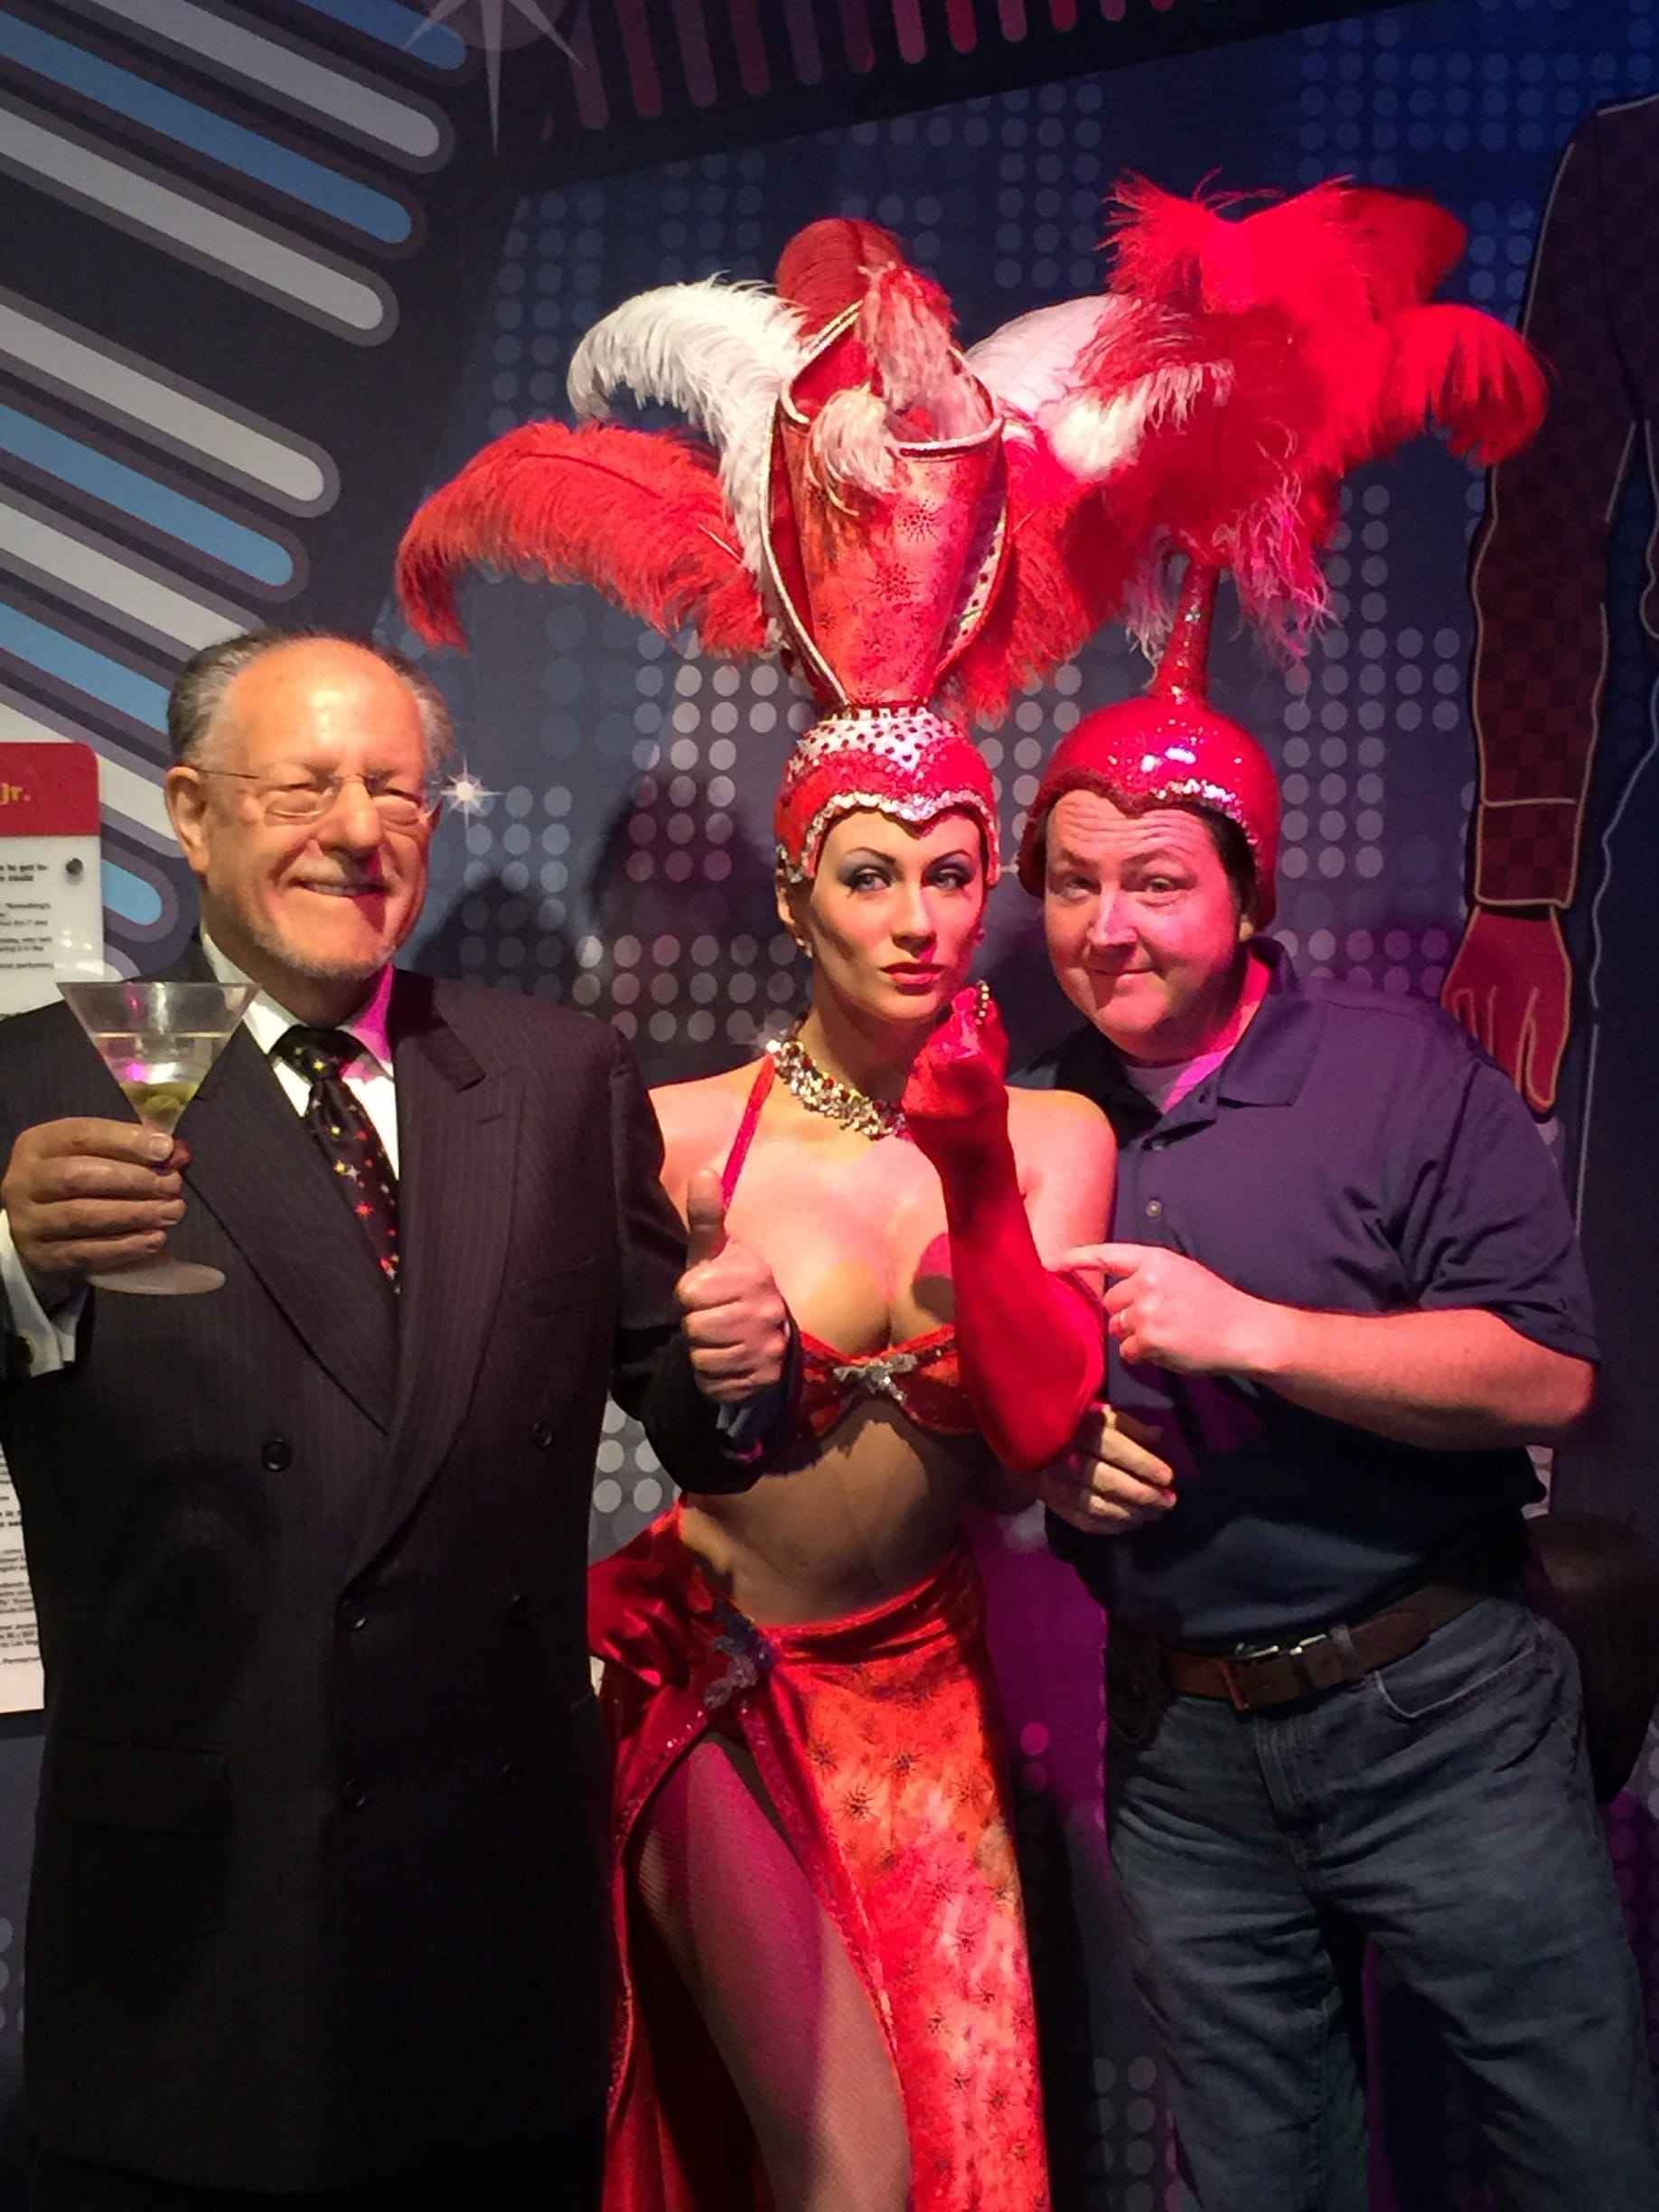 Bill as a showgirl in Las Vegas